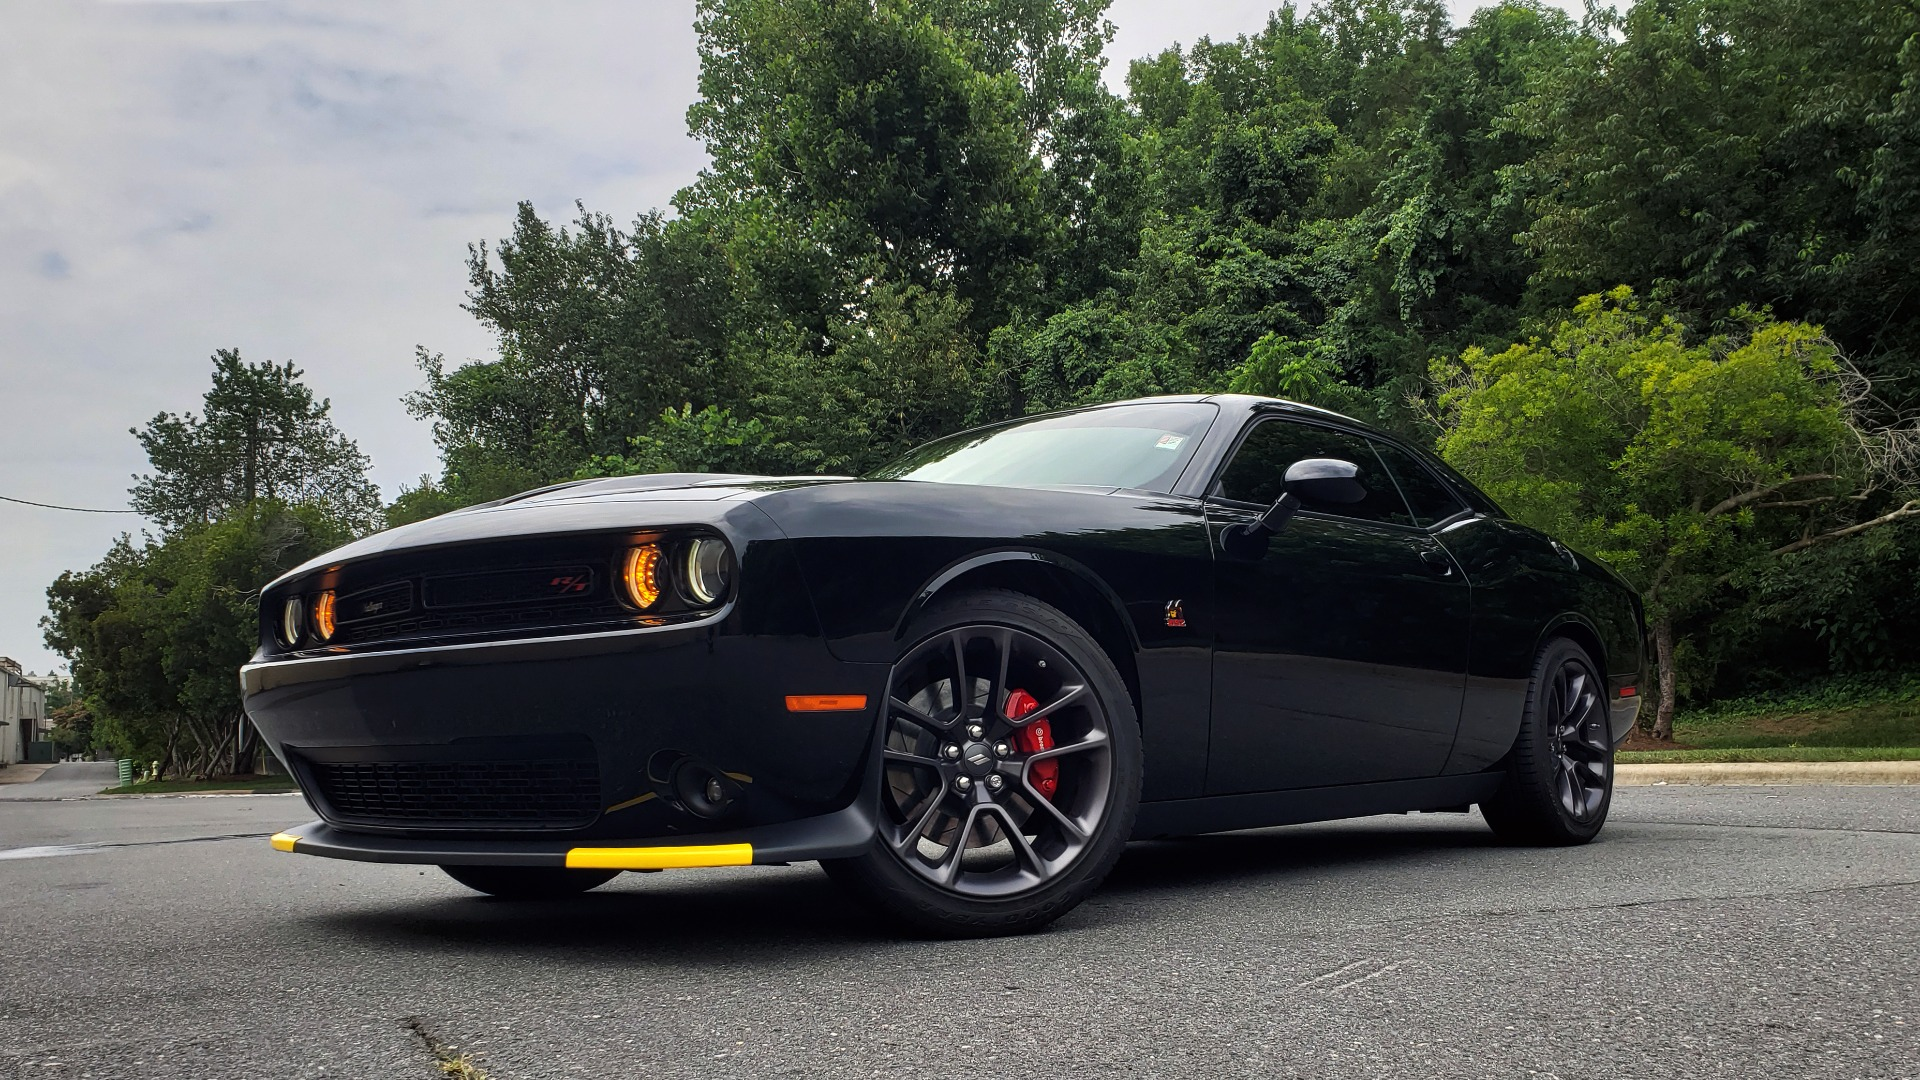 Used 2020 Dodge Challenger R/T Scat Pack for sale Sold at Formula Imports in Charlotte NC 28227 1